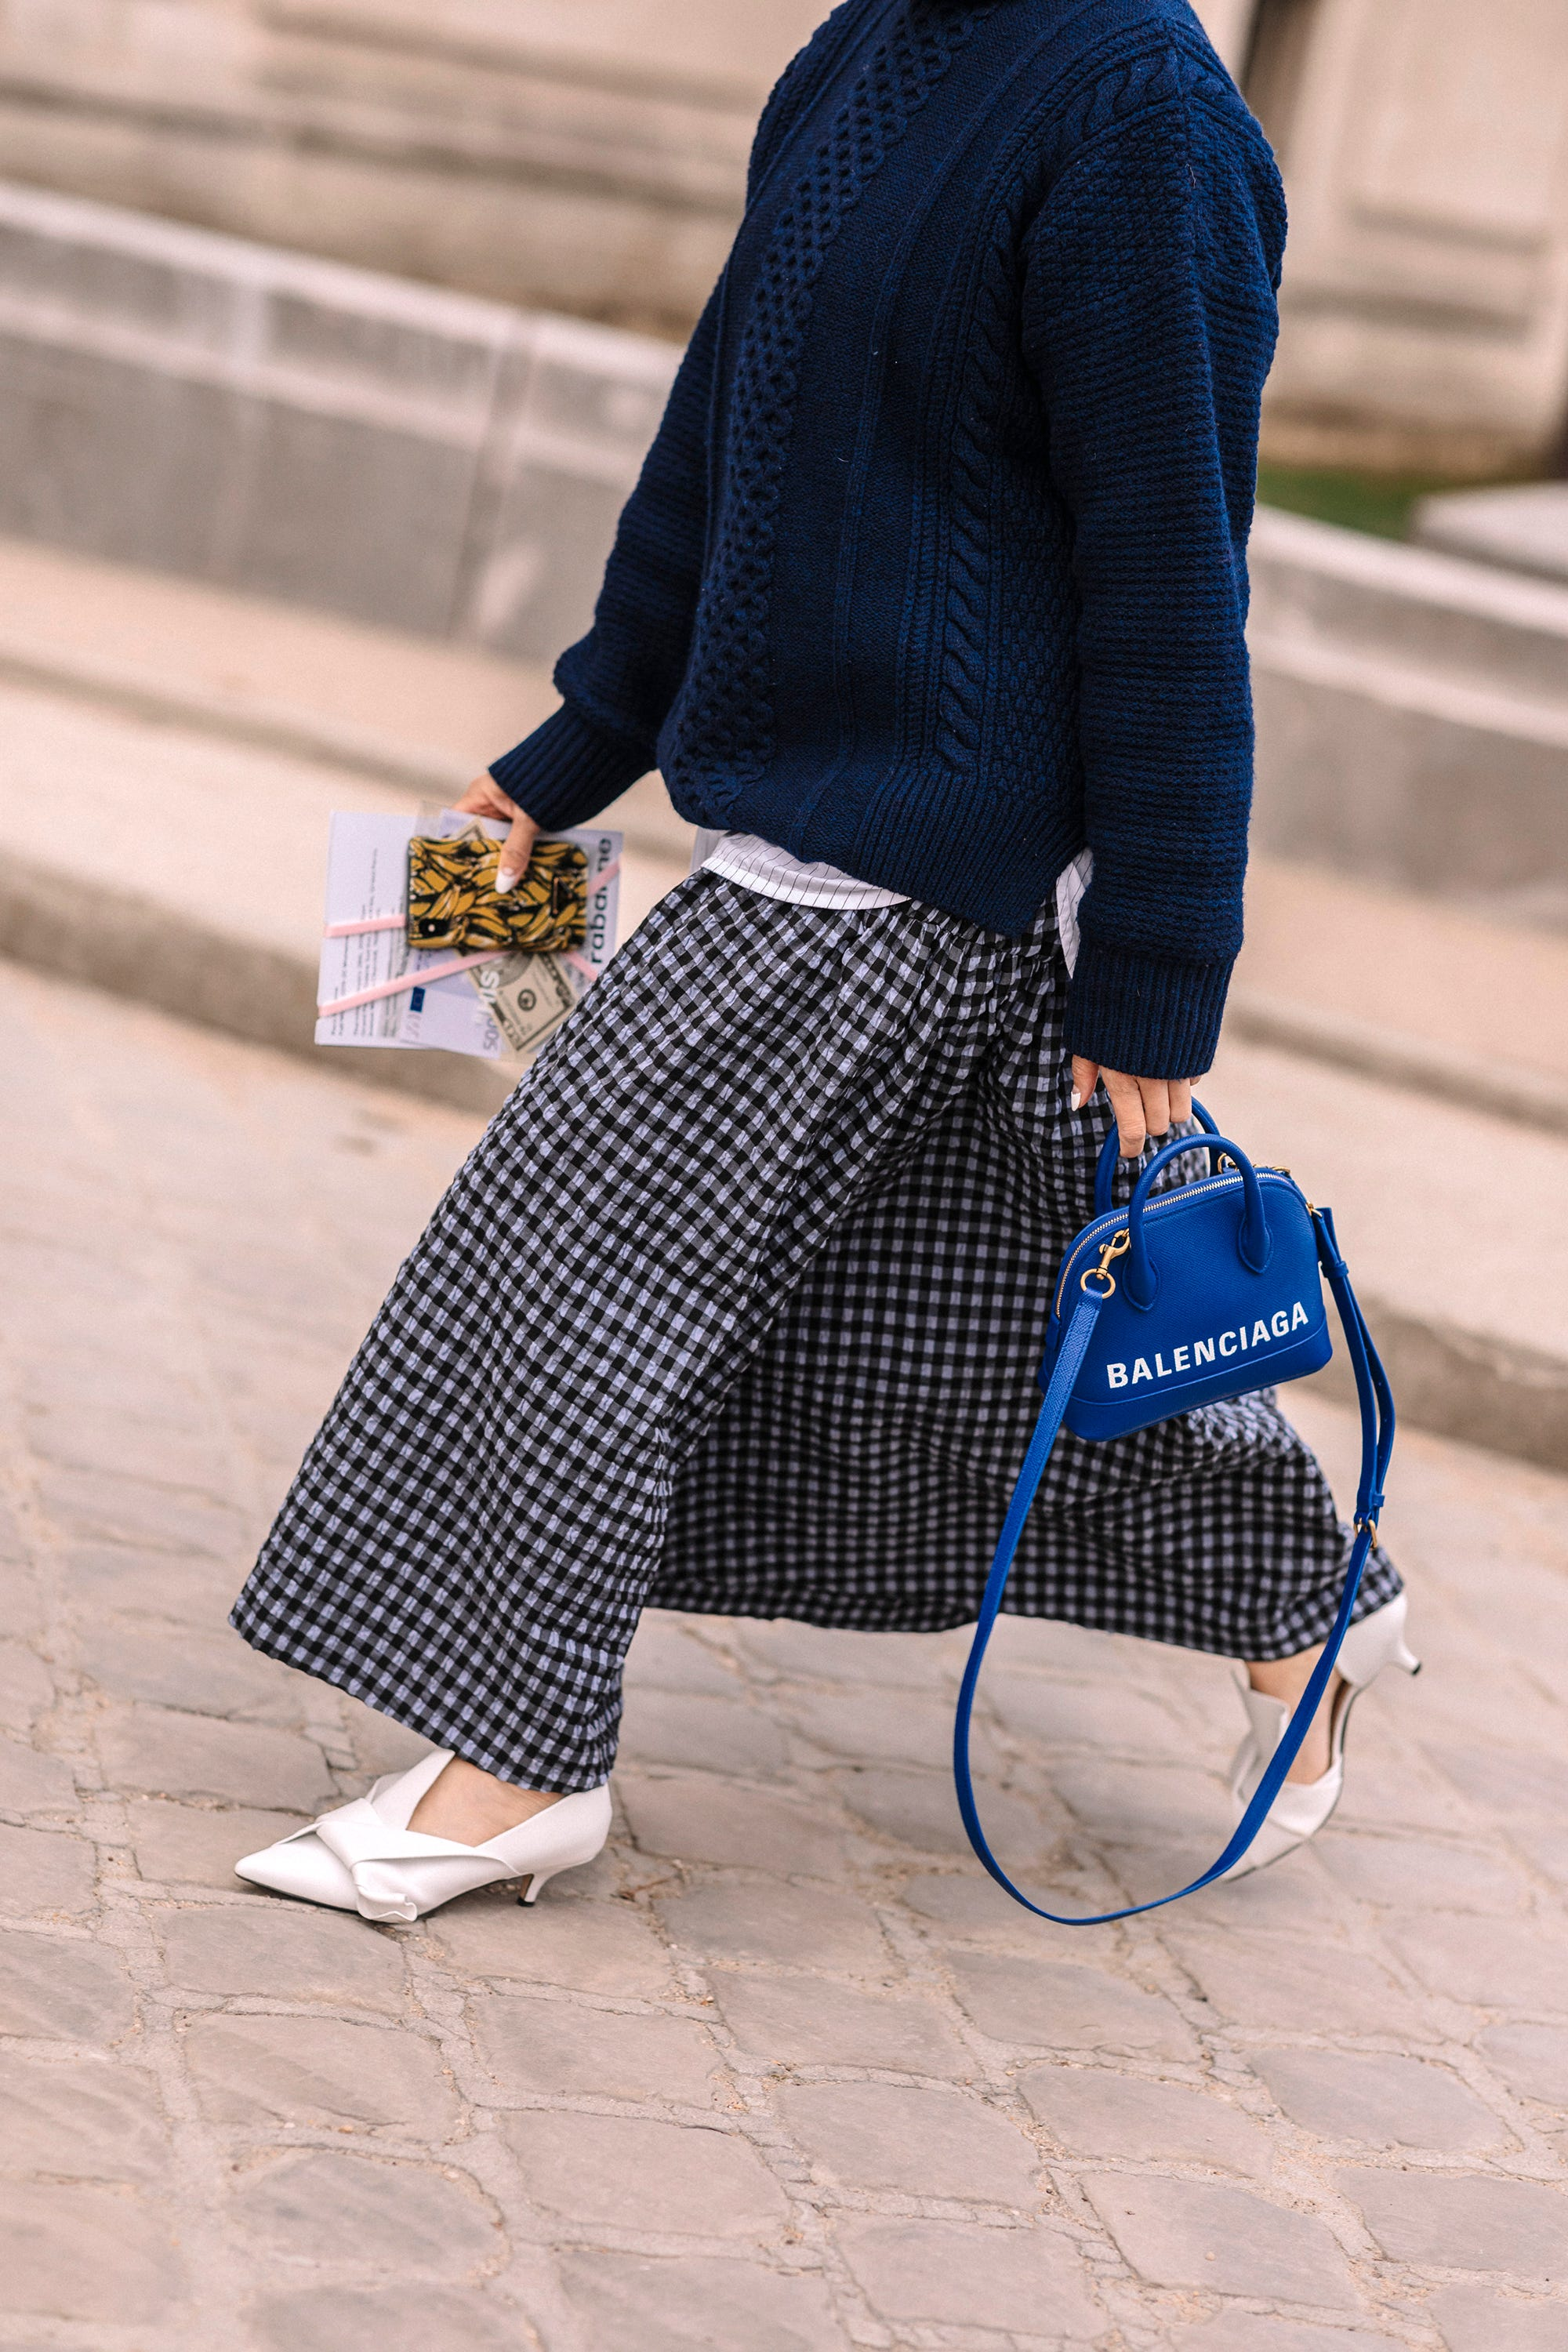 69c76893809 Shop Footwear Trends From Paris Fashion Week